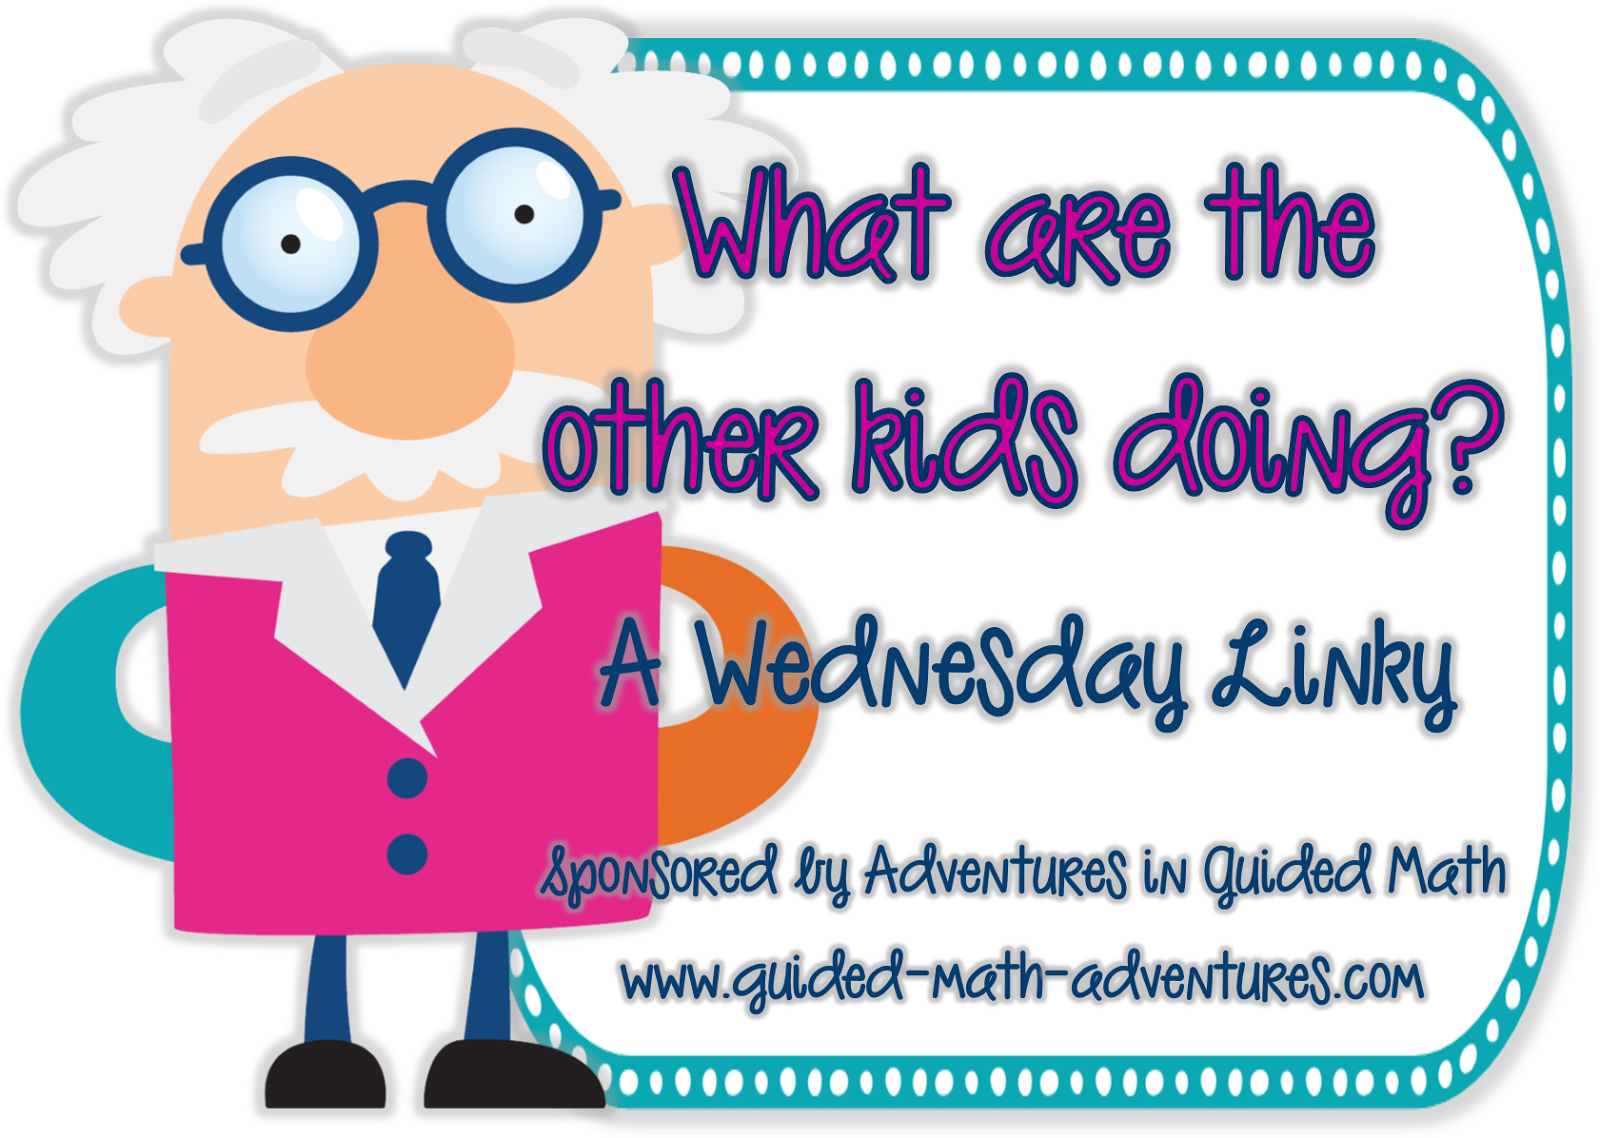 http://www.guided-math-adventures.com/2014/08/what-are-other-kids-doing-wednesday.html